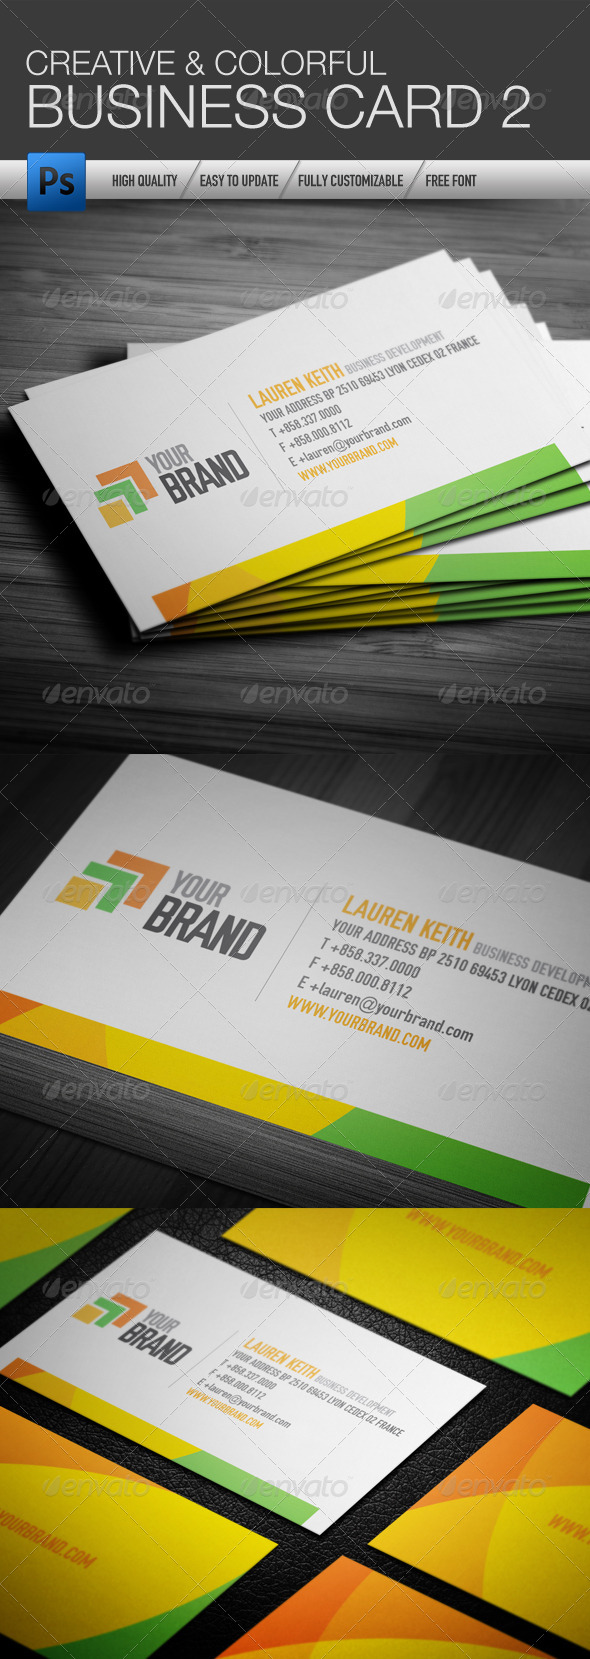 GraphicRiver Creative and Colorful Business Card 2 4368390